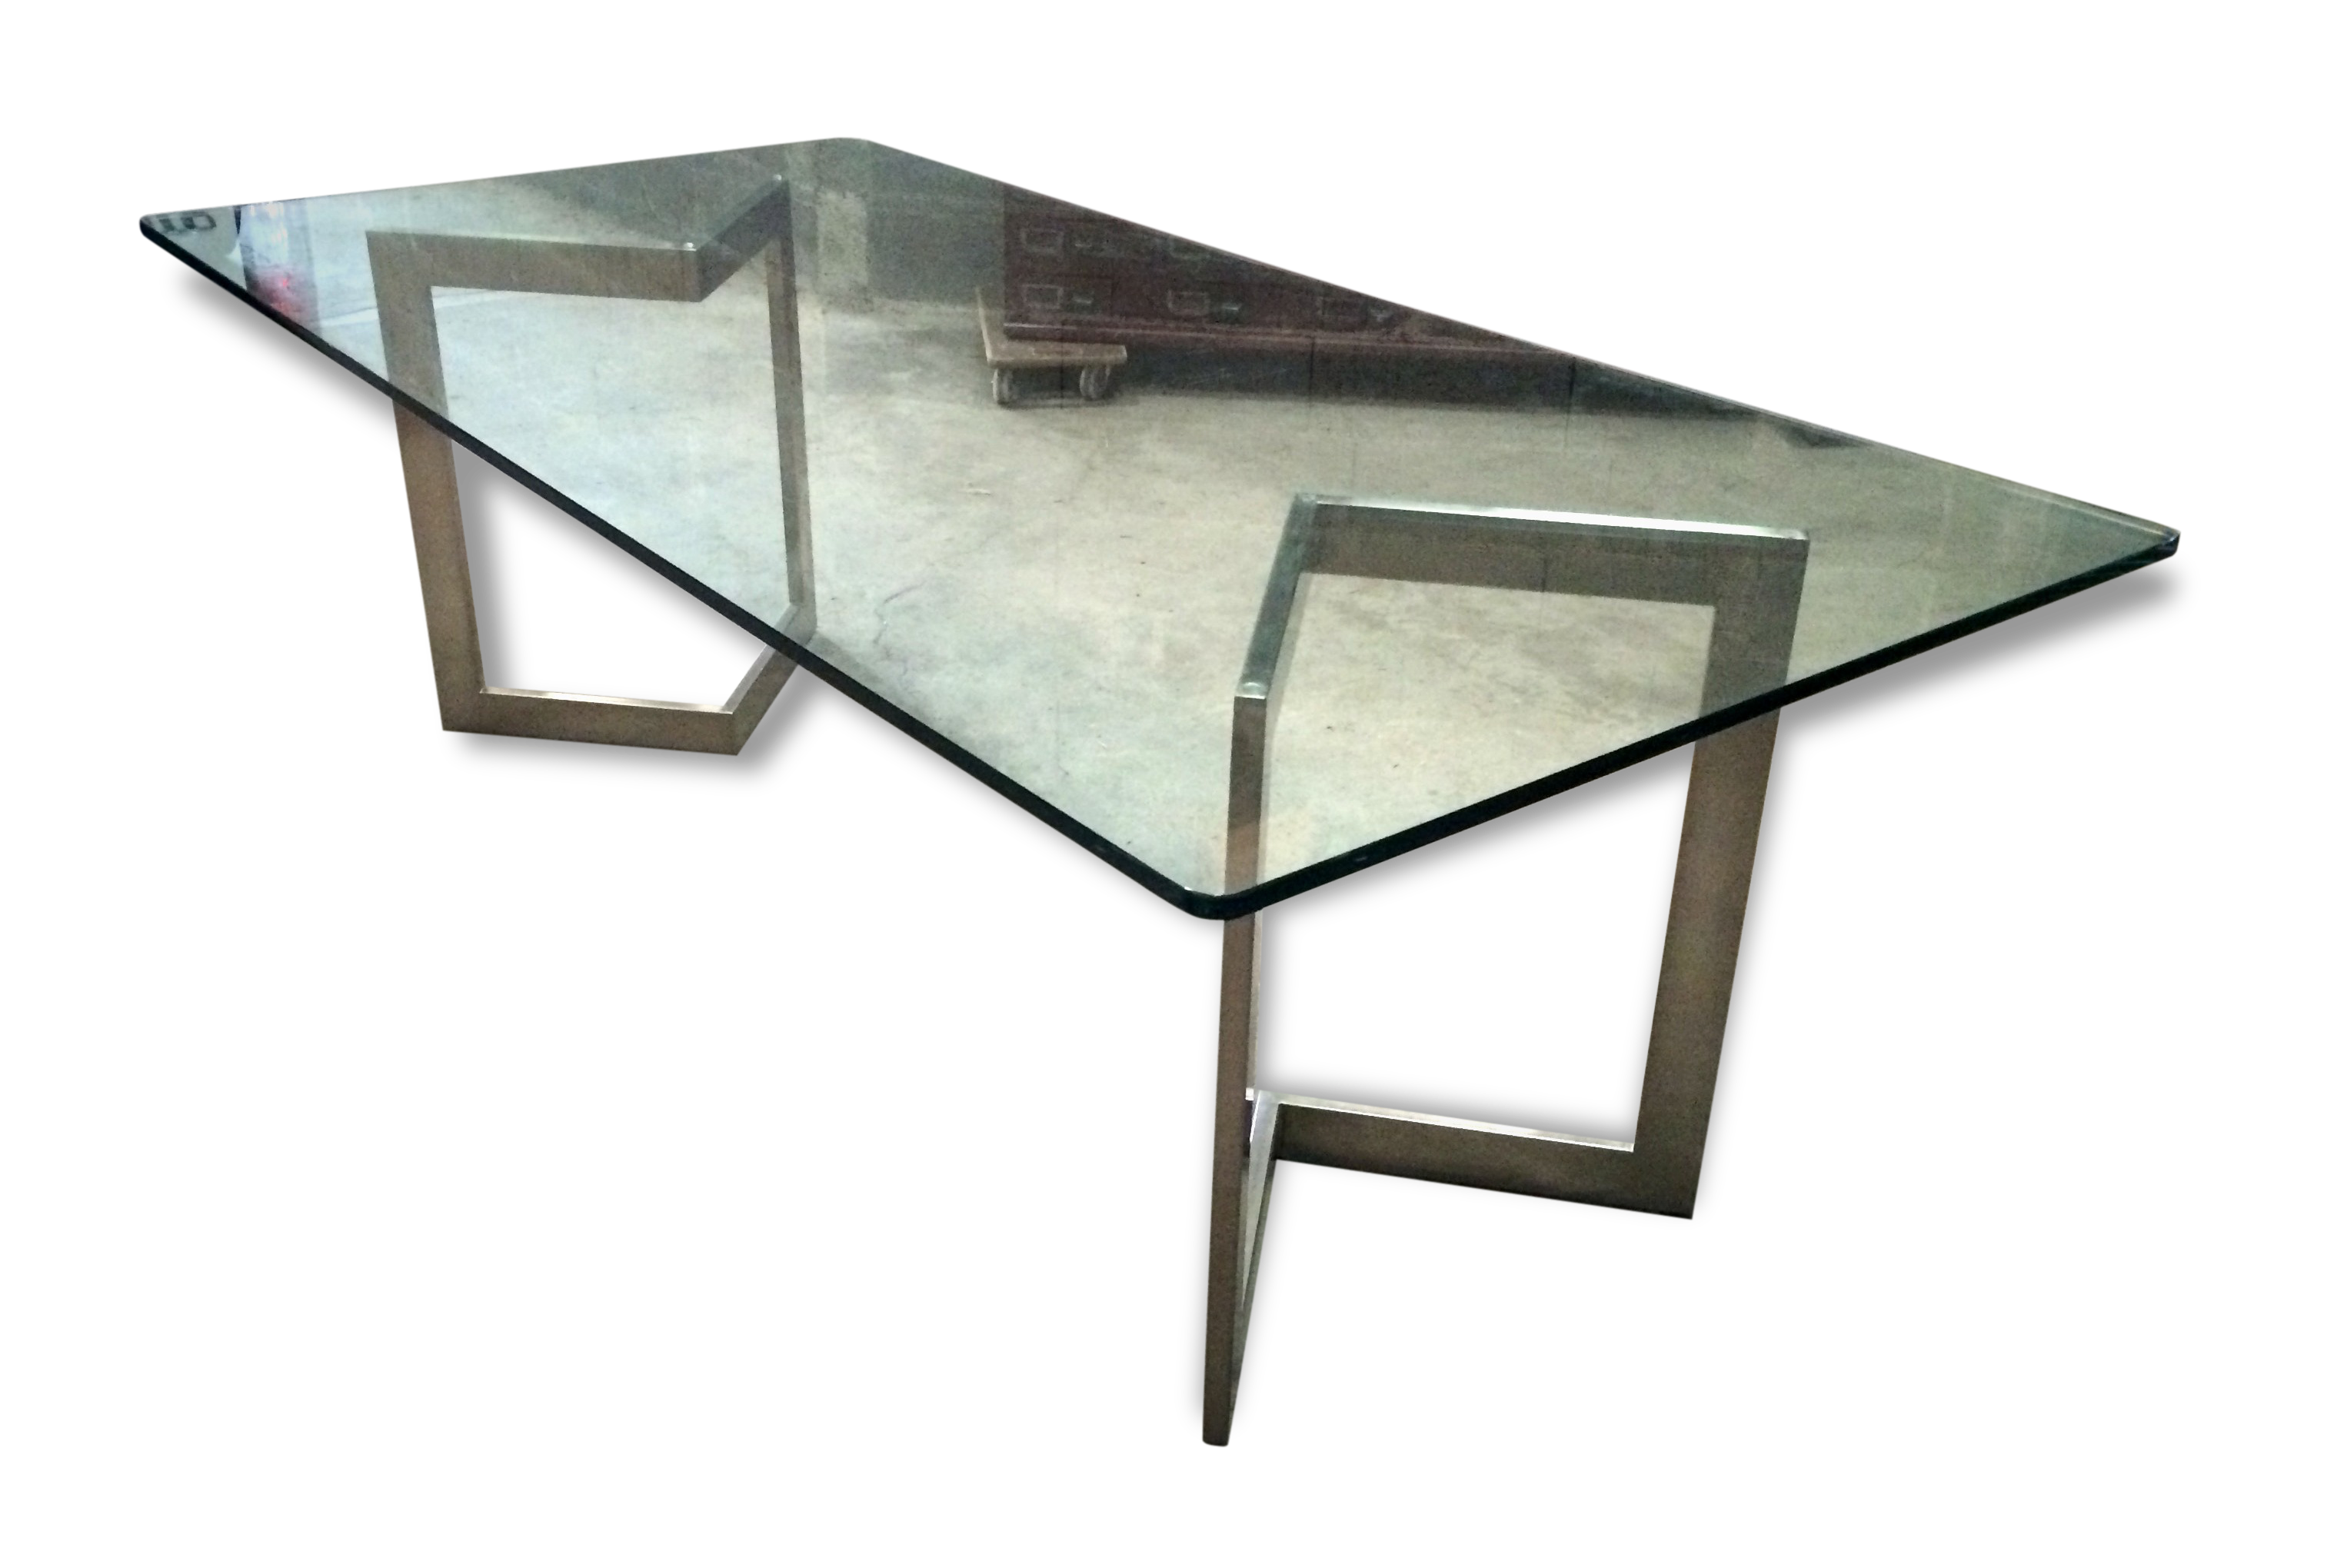 Table de salle a manger originale fashion designs - Table de salle a manger en verre ...